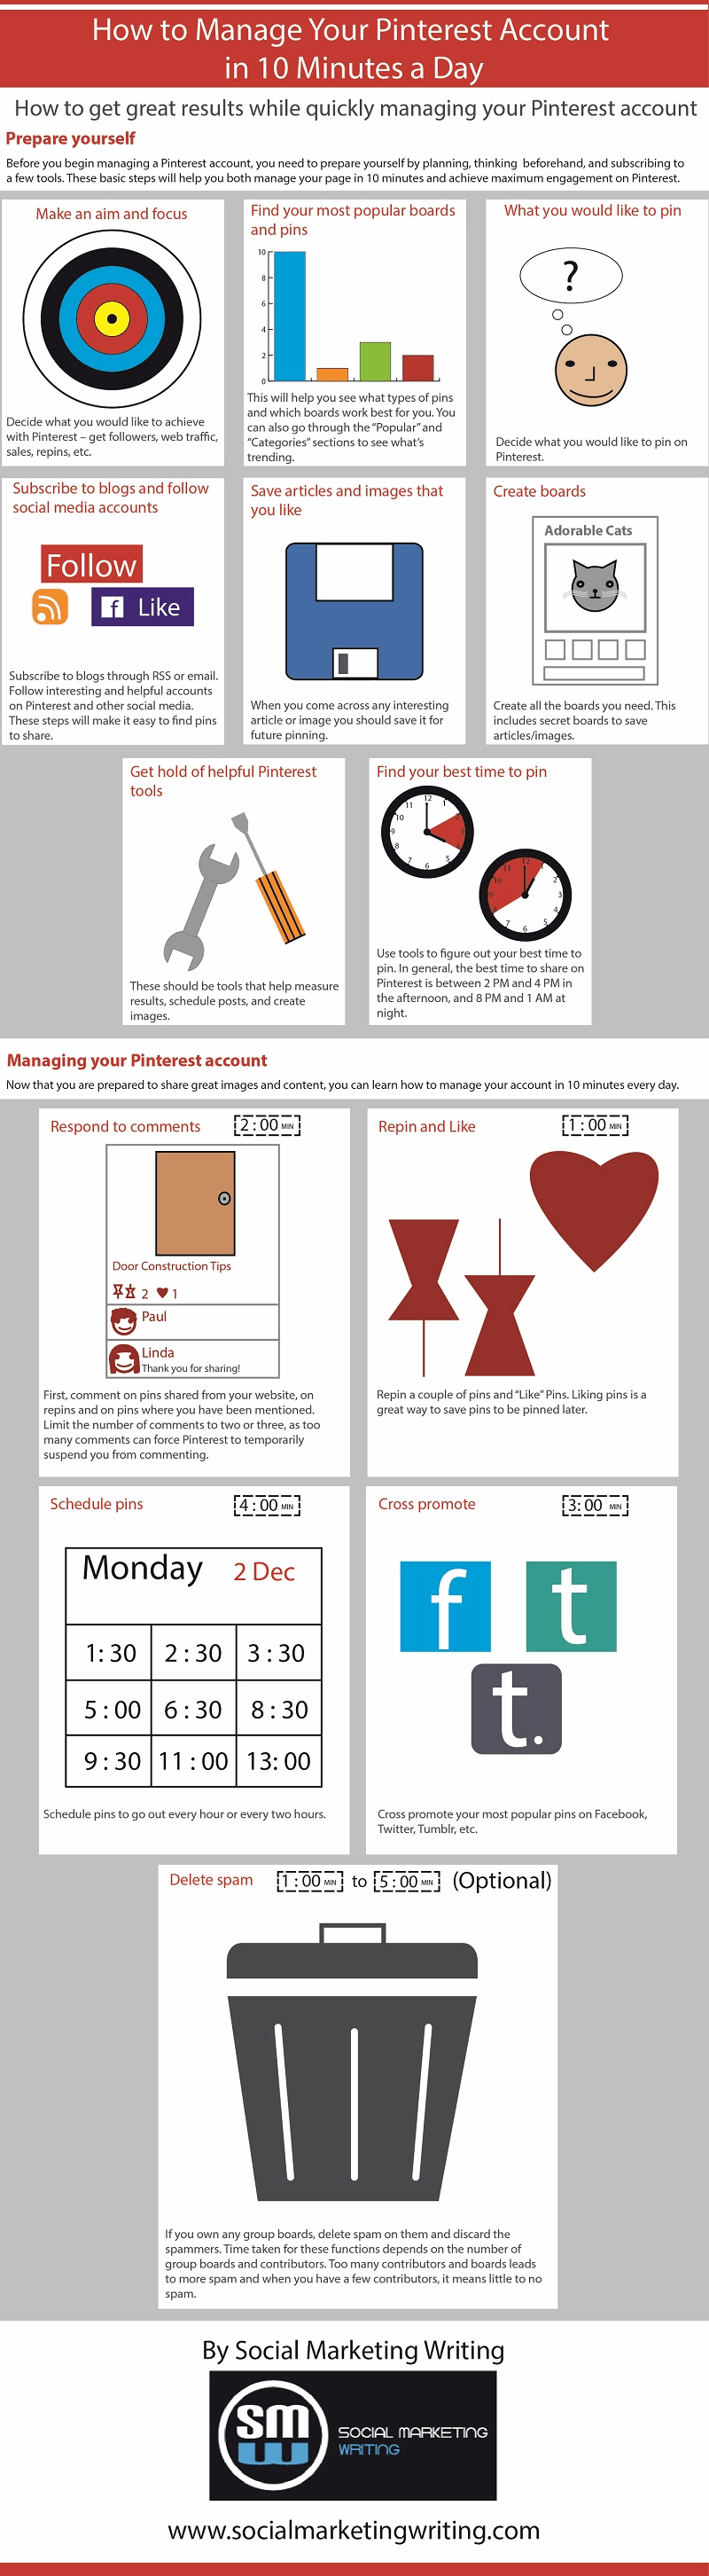 Infographic-How-to-Manage-Your-Pinterest-Account-in-10-Minutes-a-Day